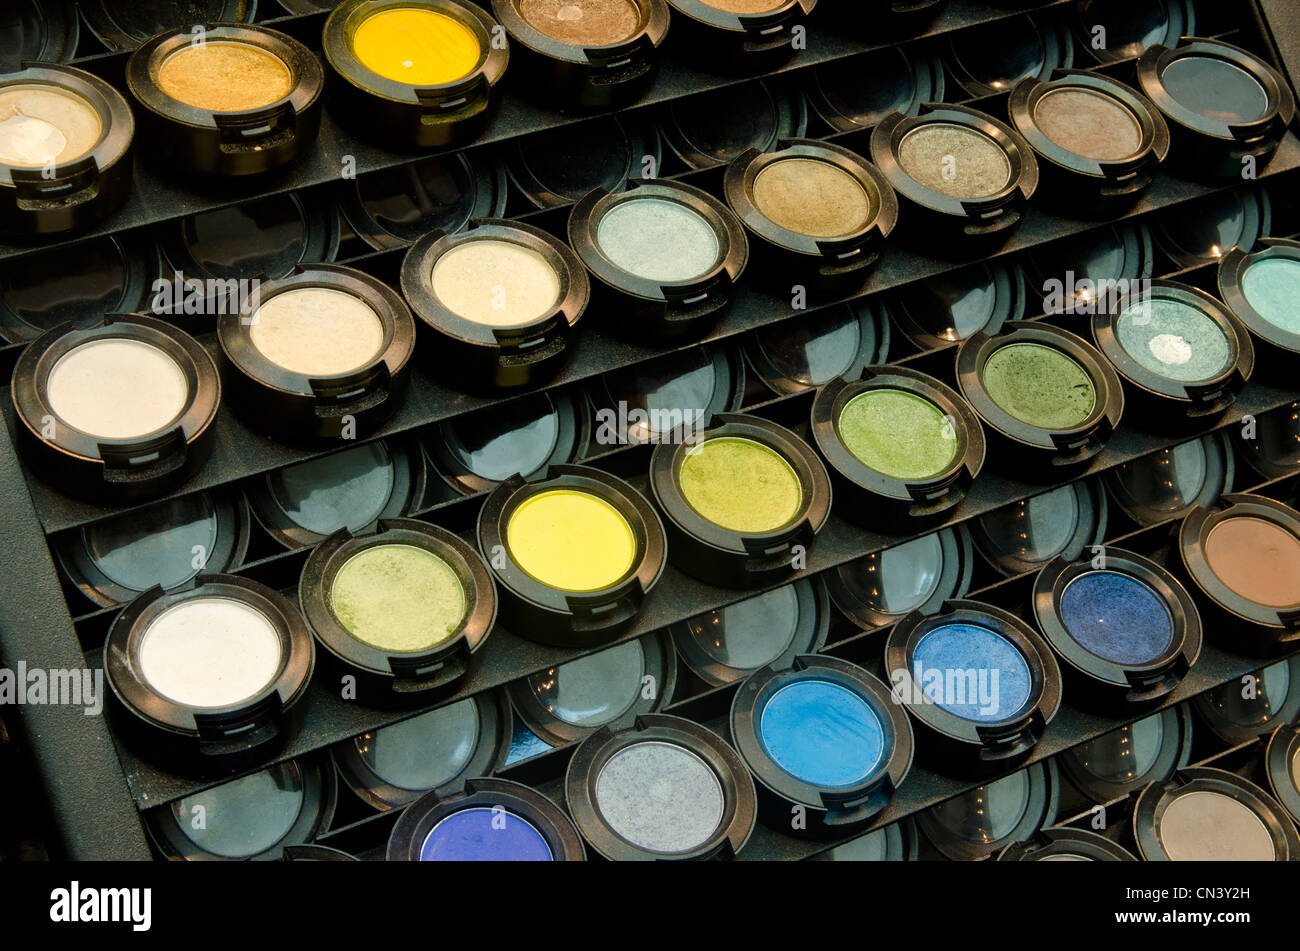 Close up of colorful eyeshadow palette group - Stock Image